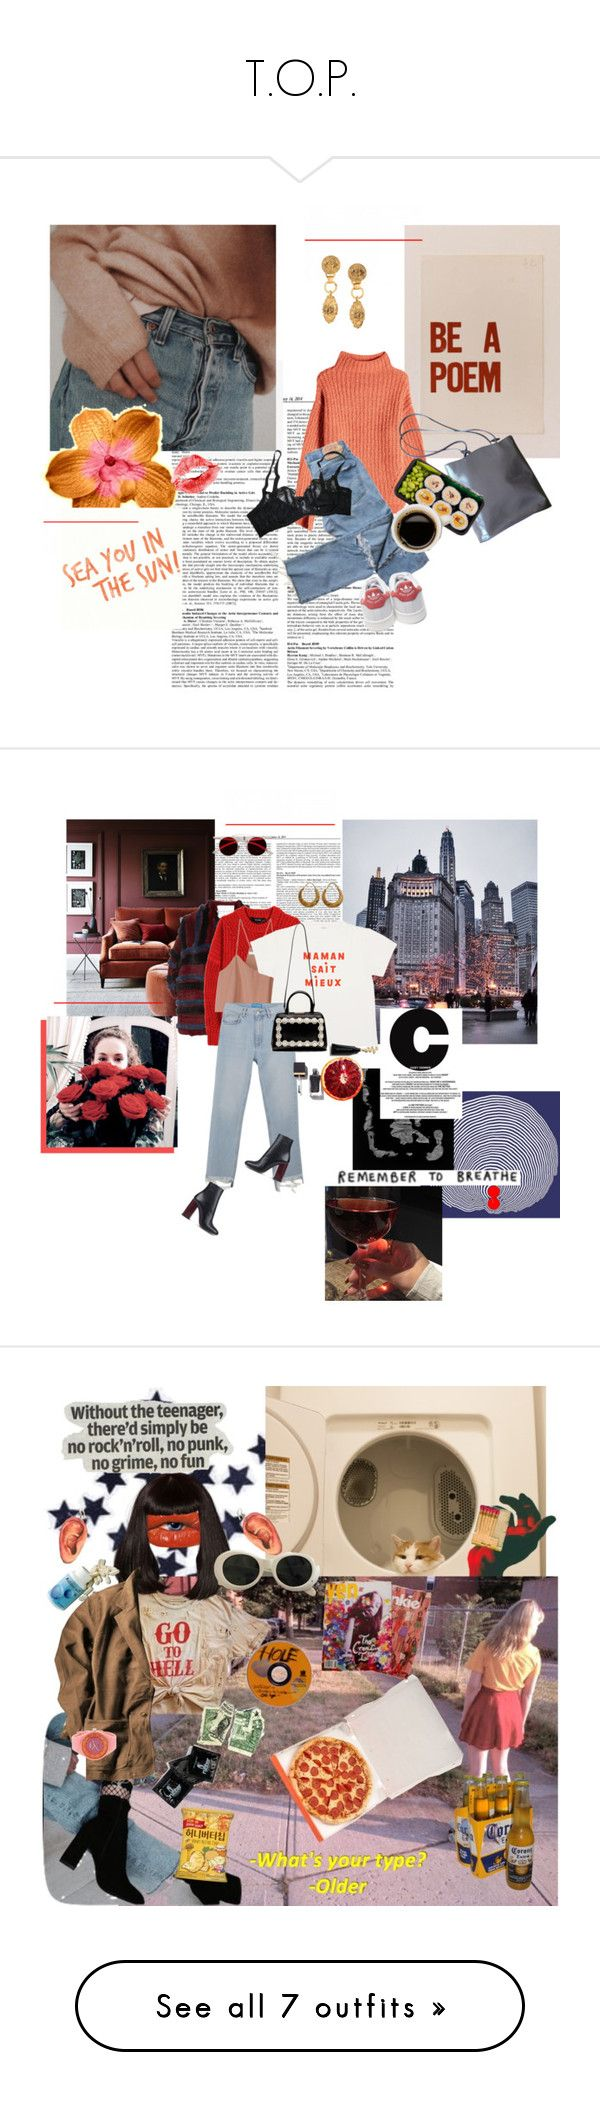 """""""T.O.P."""" by allen-subbotina ❤ liked on Polyvore featuring 81 Hours, Chanel, Furla, adidas, Agent Provocateur, Sonia Rykiel, Isabel Marant, TIBI, M.i.h Jeans and Paul Smith"""